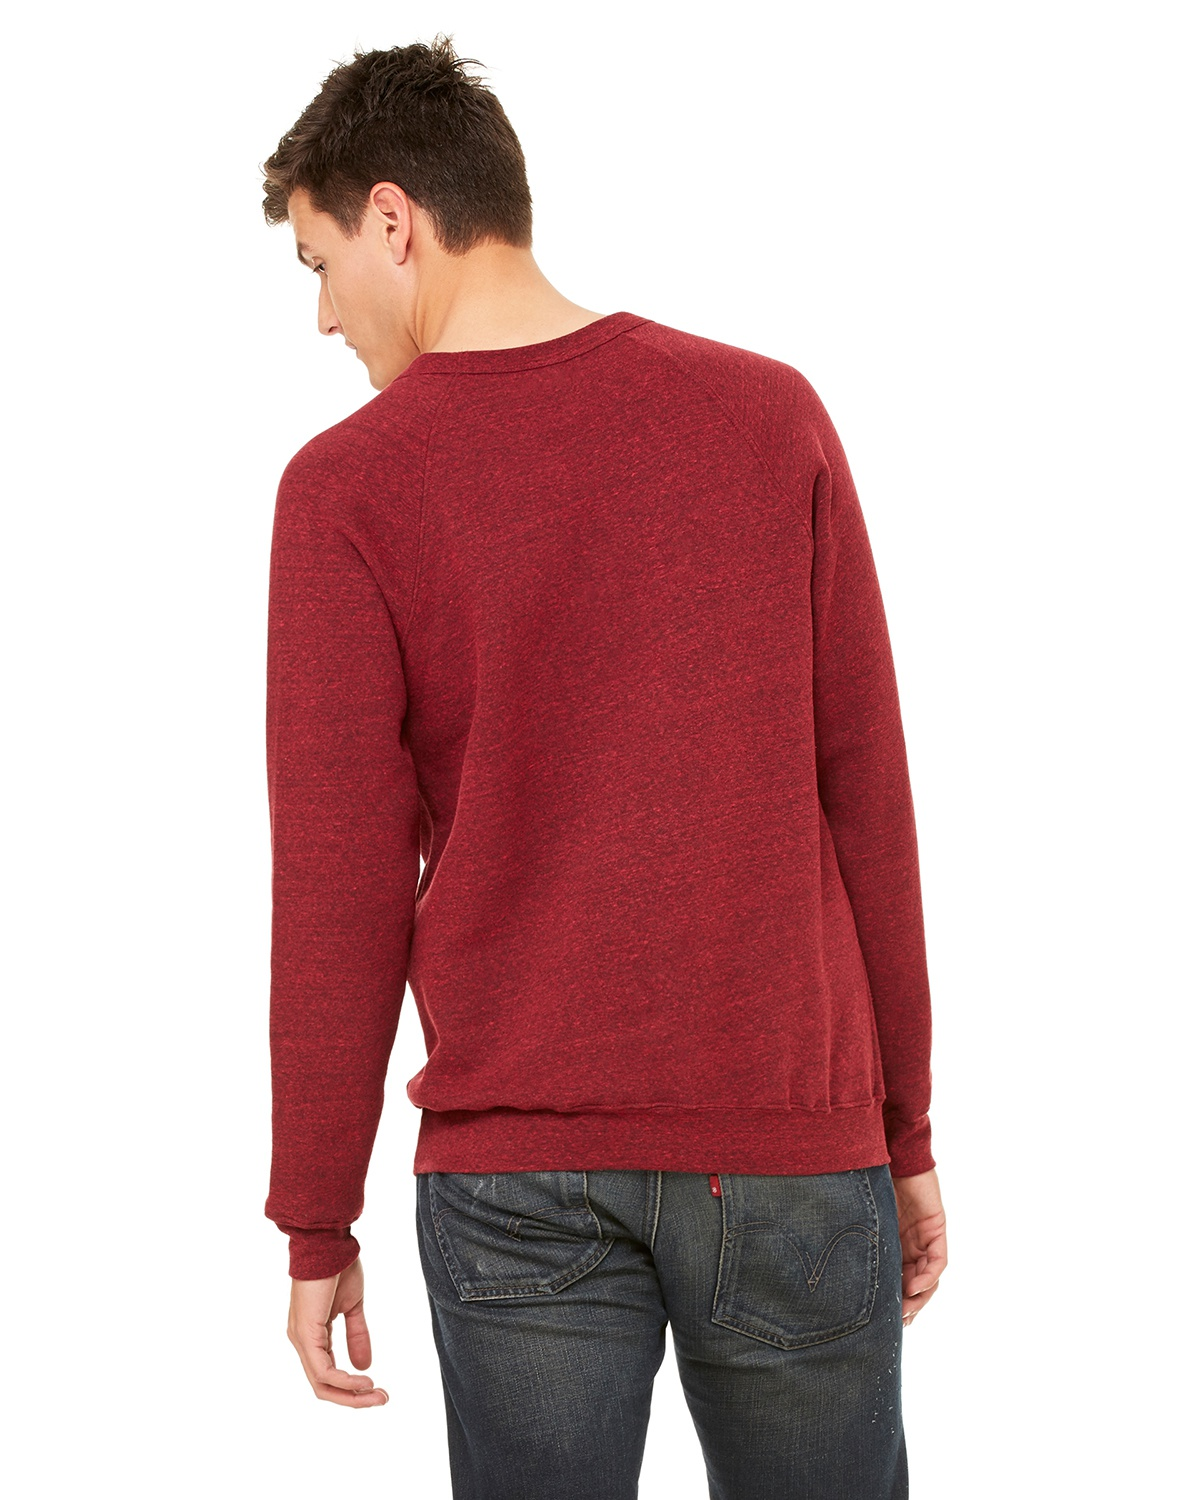 XS Red Heather Canvas 3901 Unisex Triblend Sponge Fleece Pullover